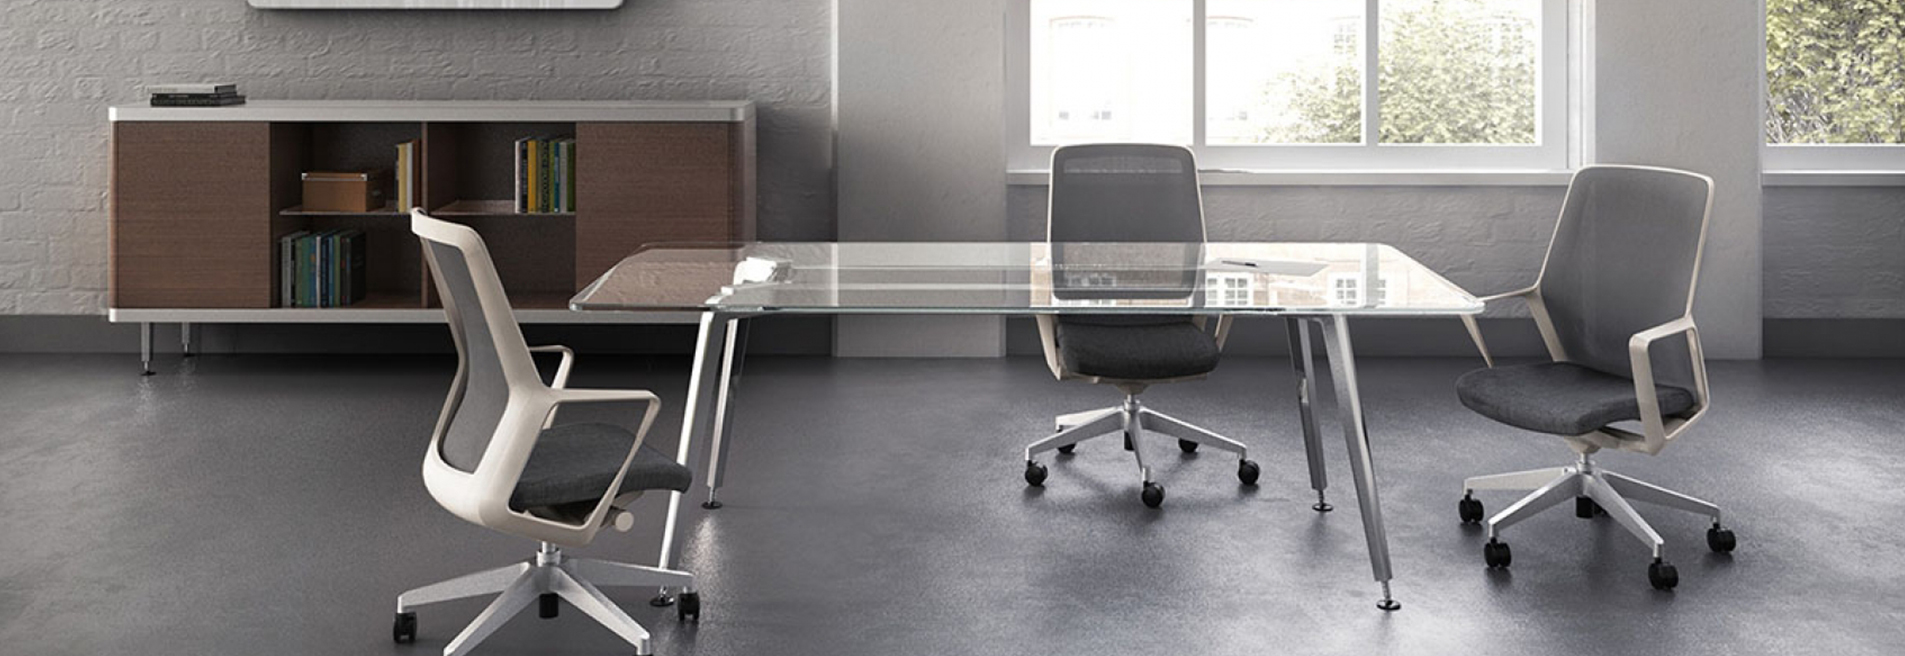 Conference Room Furniture by cubicles.com